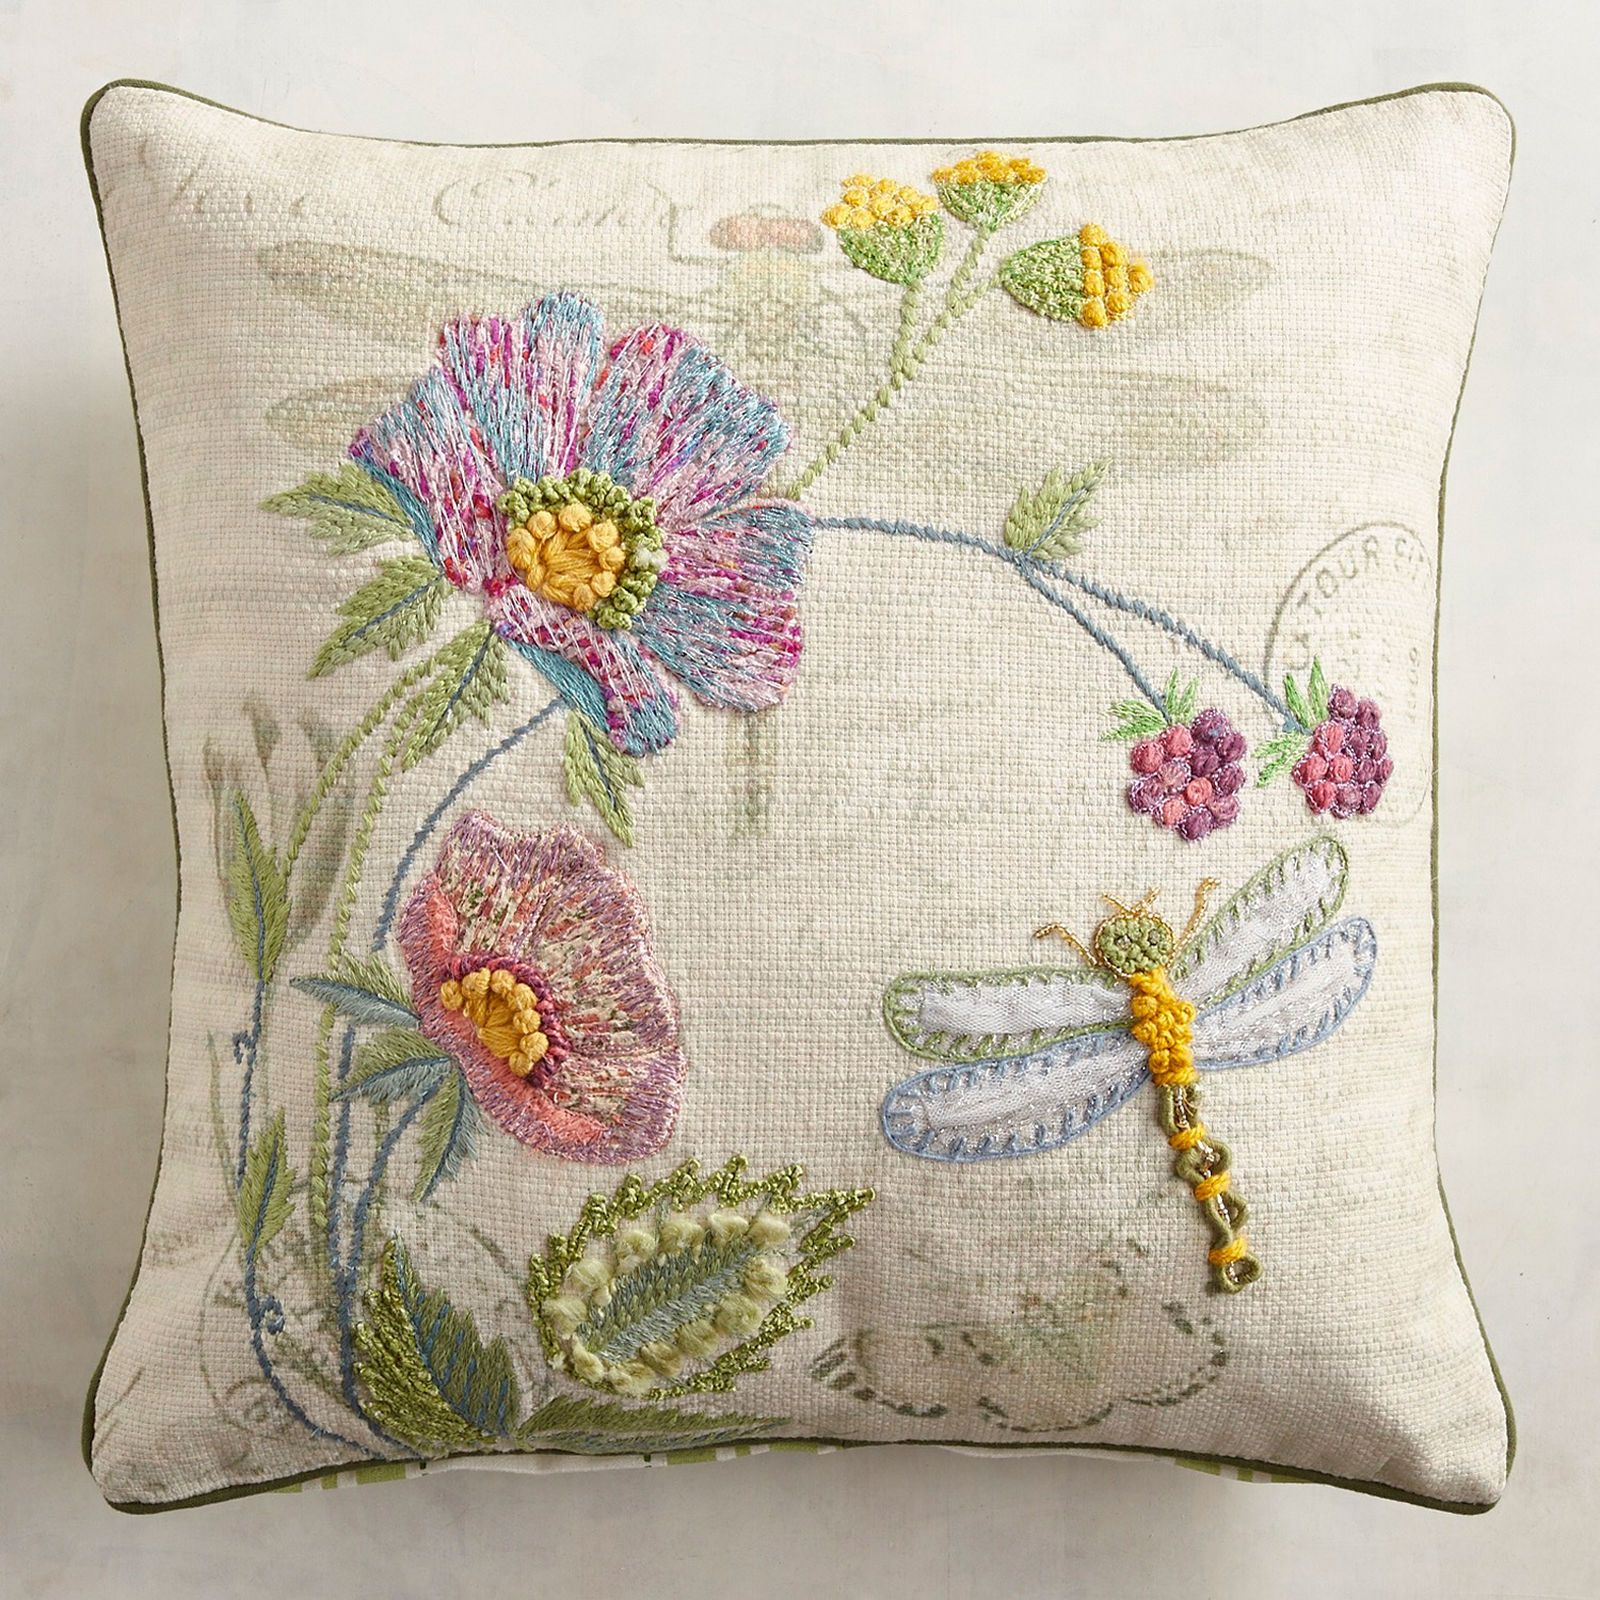 Tremendous Floral Dragonfly Pillow Pier 1 Imports Pillow Onthecornerstone Fun Painted Chair Ideas Images Onthecornerstoneorg